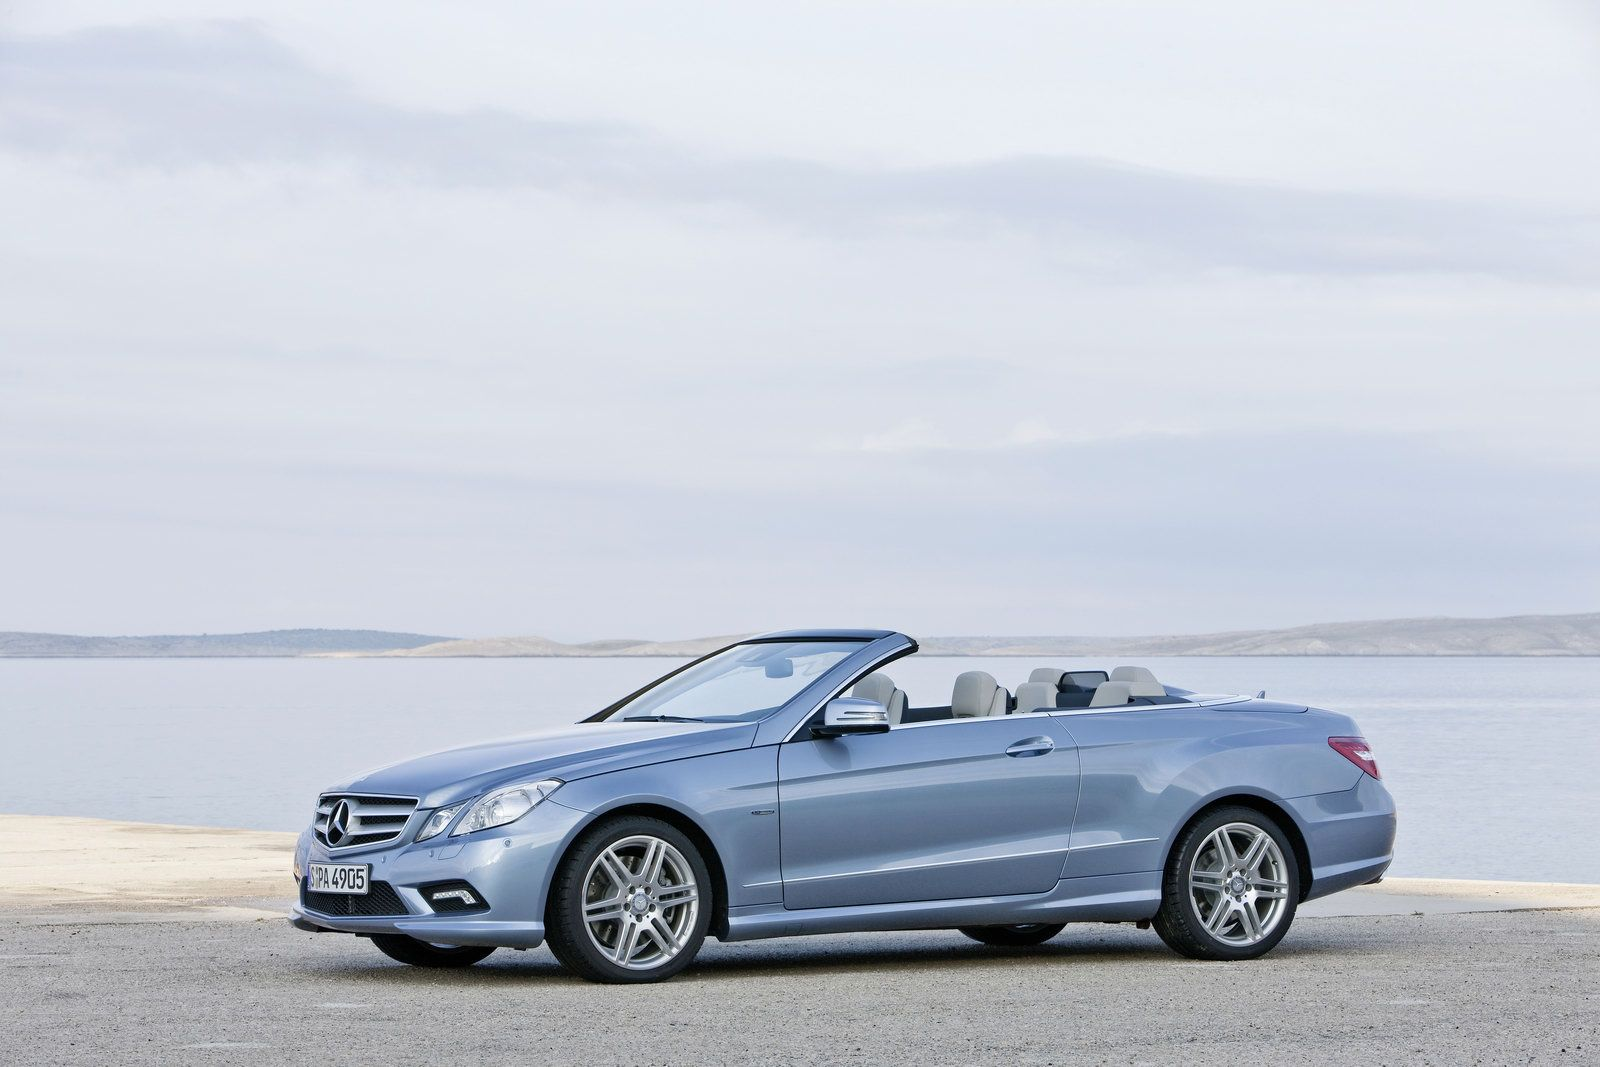 new 2010 mercedes e class convertible officially revealed